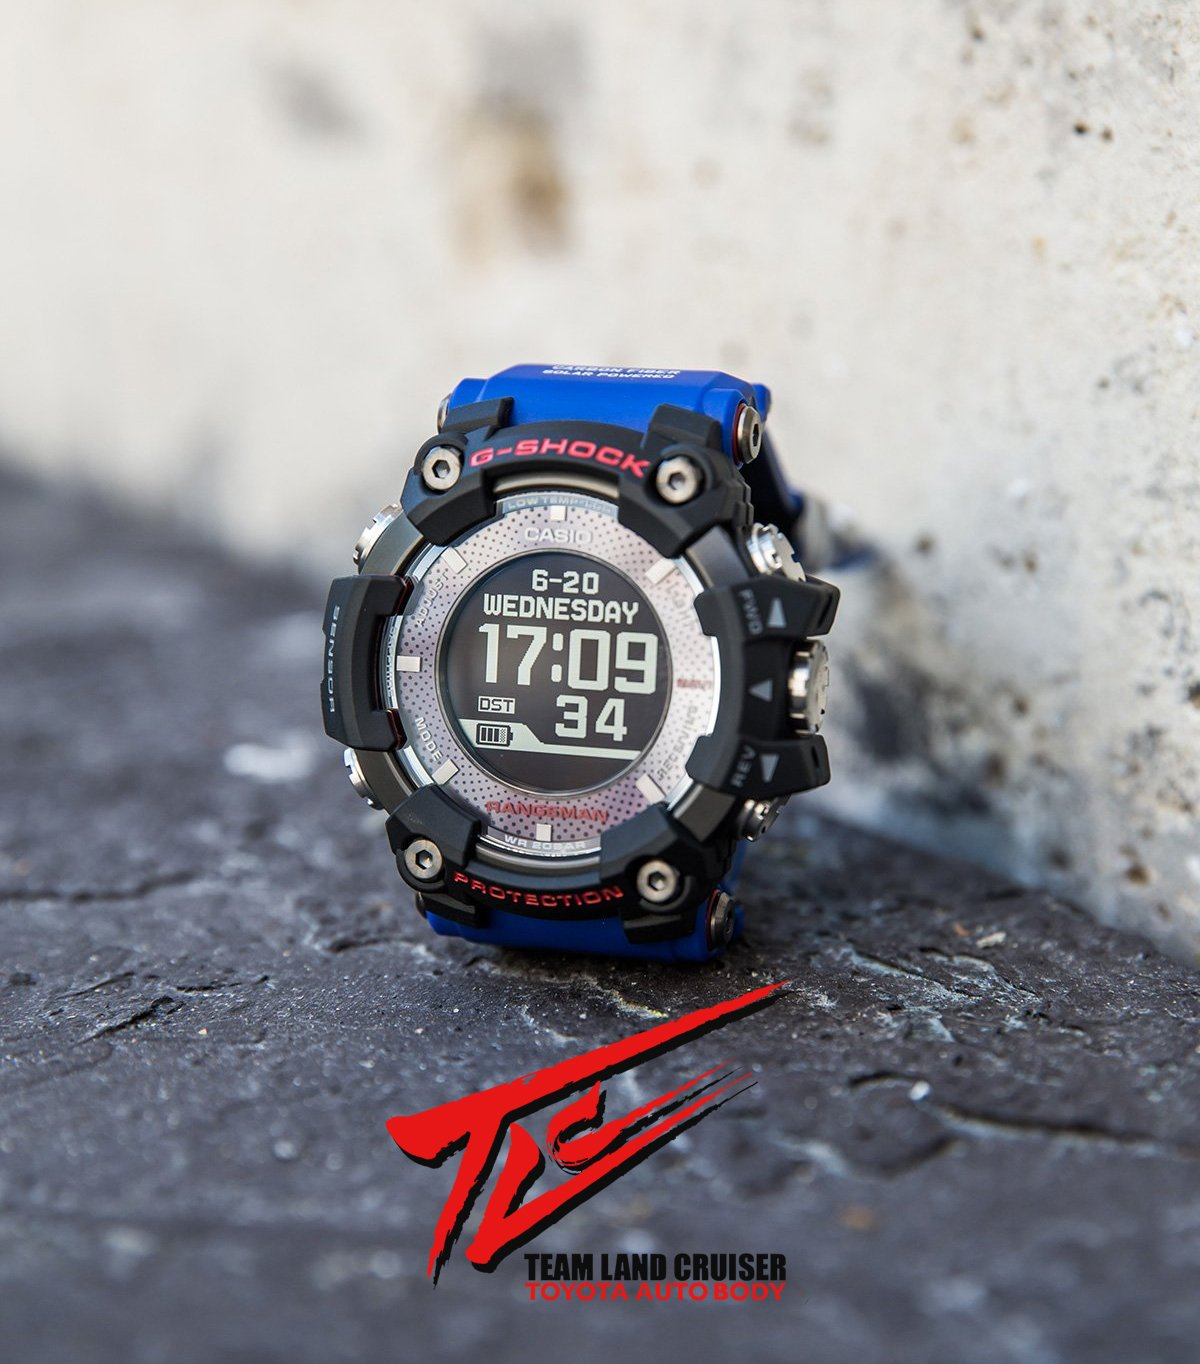 Rangeman Team Land Cruiser